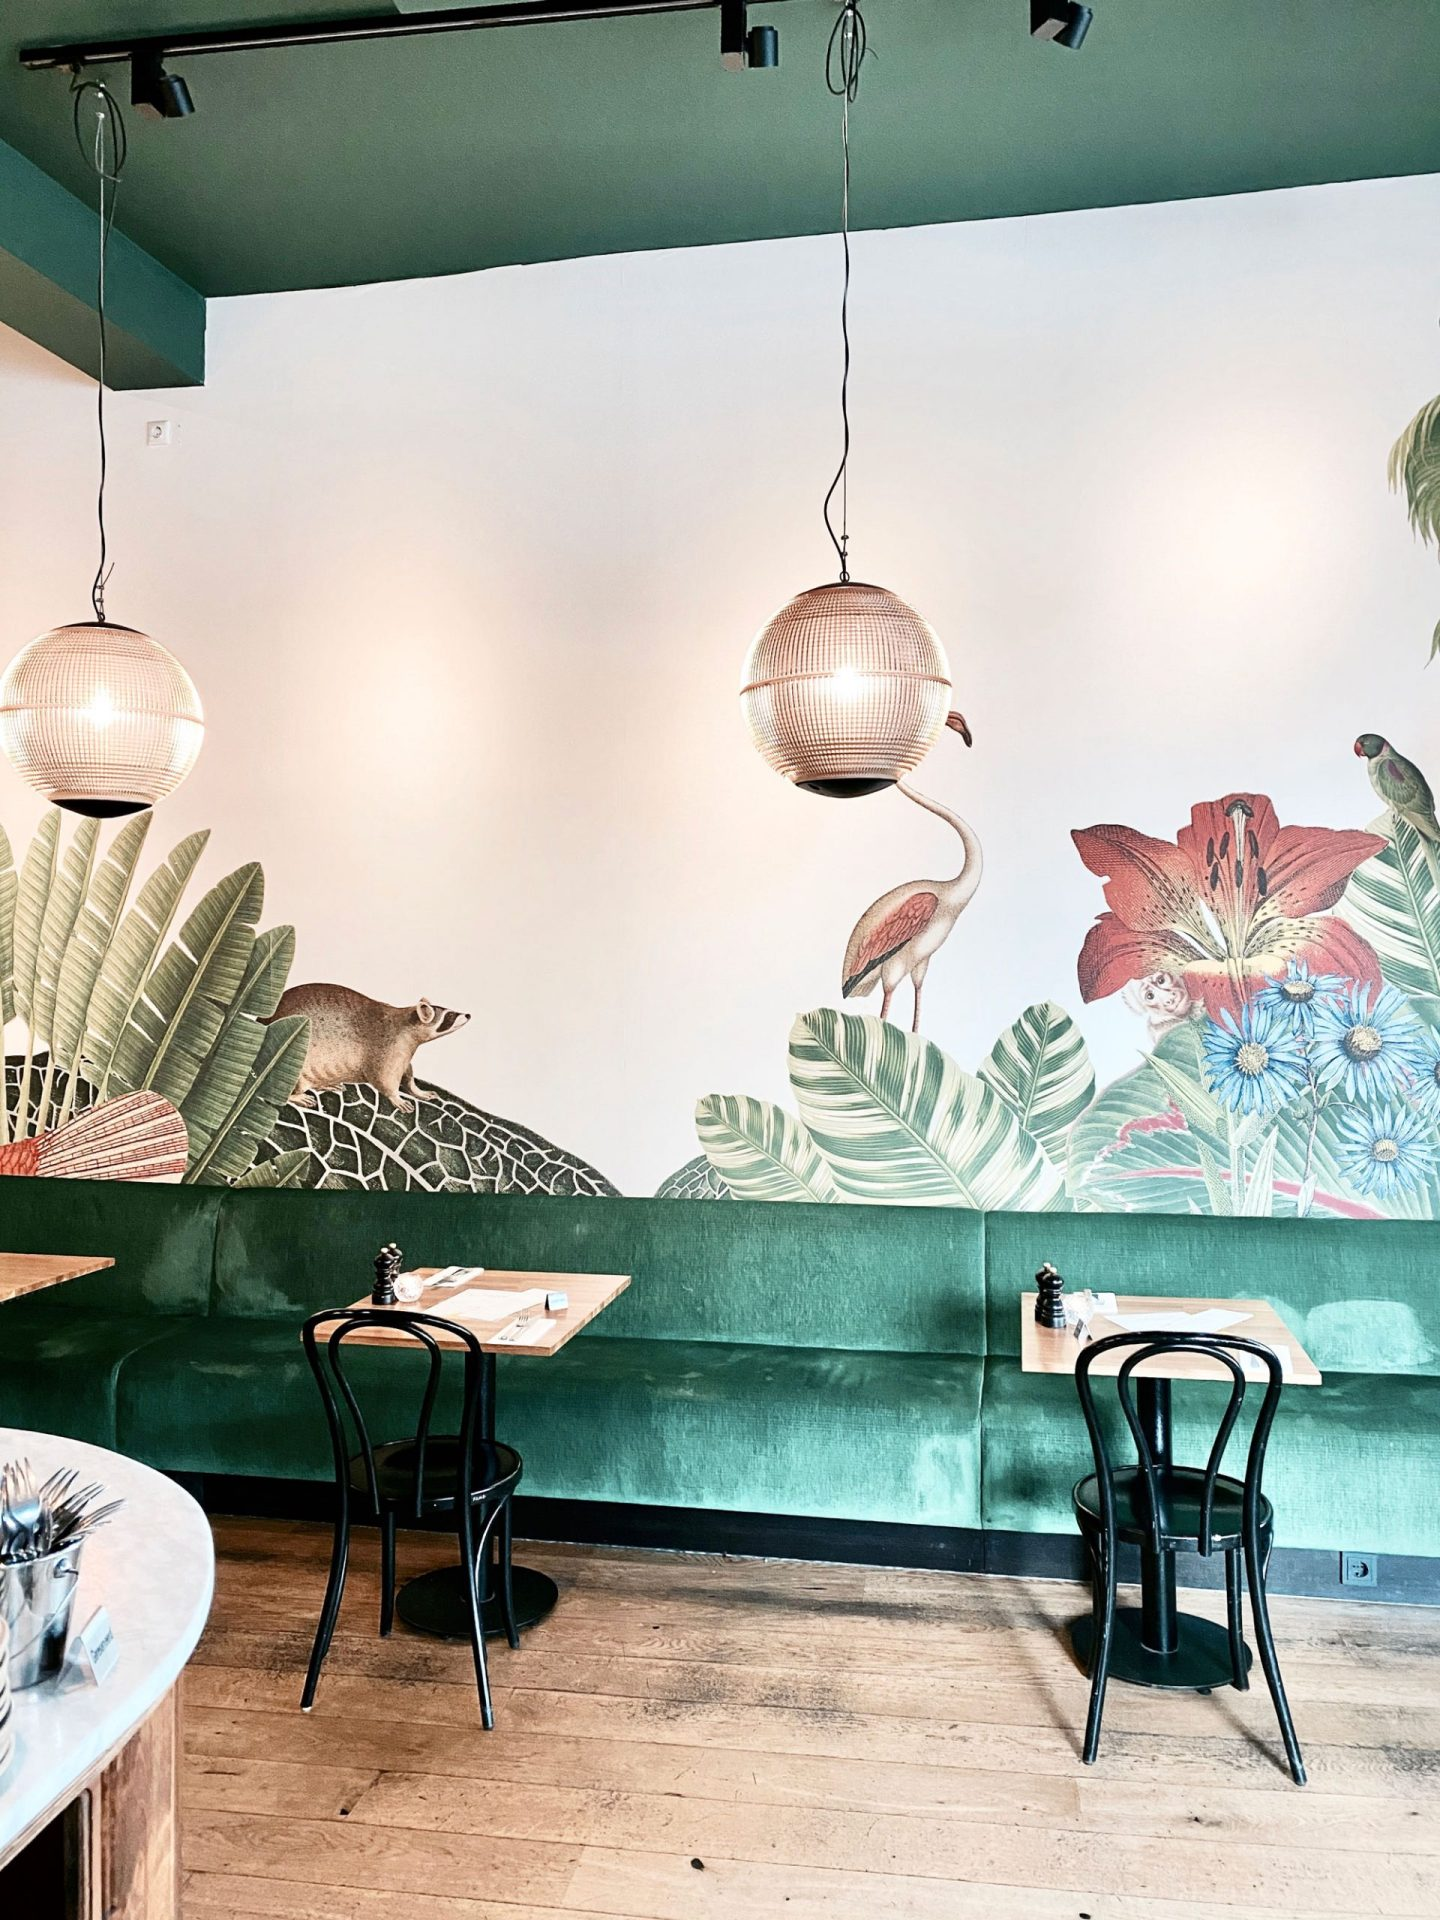 French Vibes In The City Centre Of The Hague With This Hotspot | Palmette, The Hague